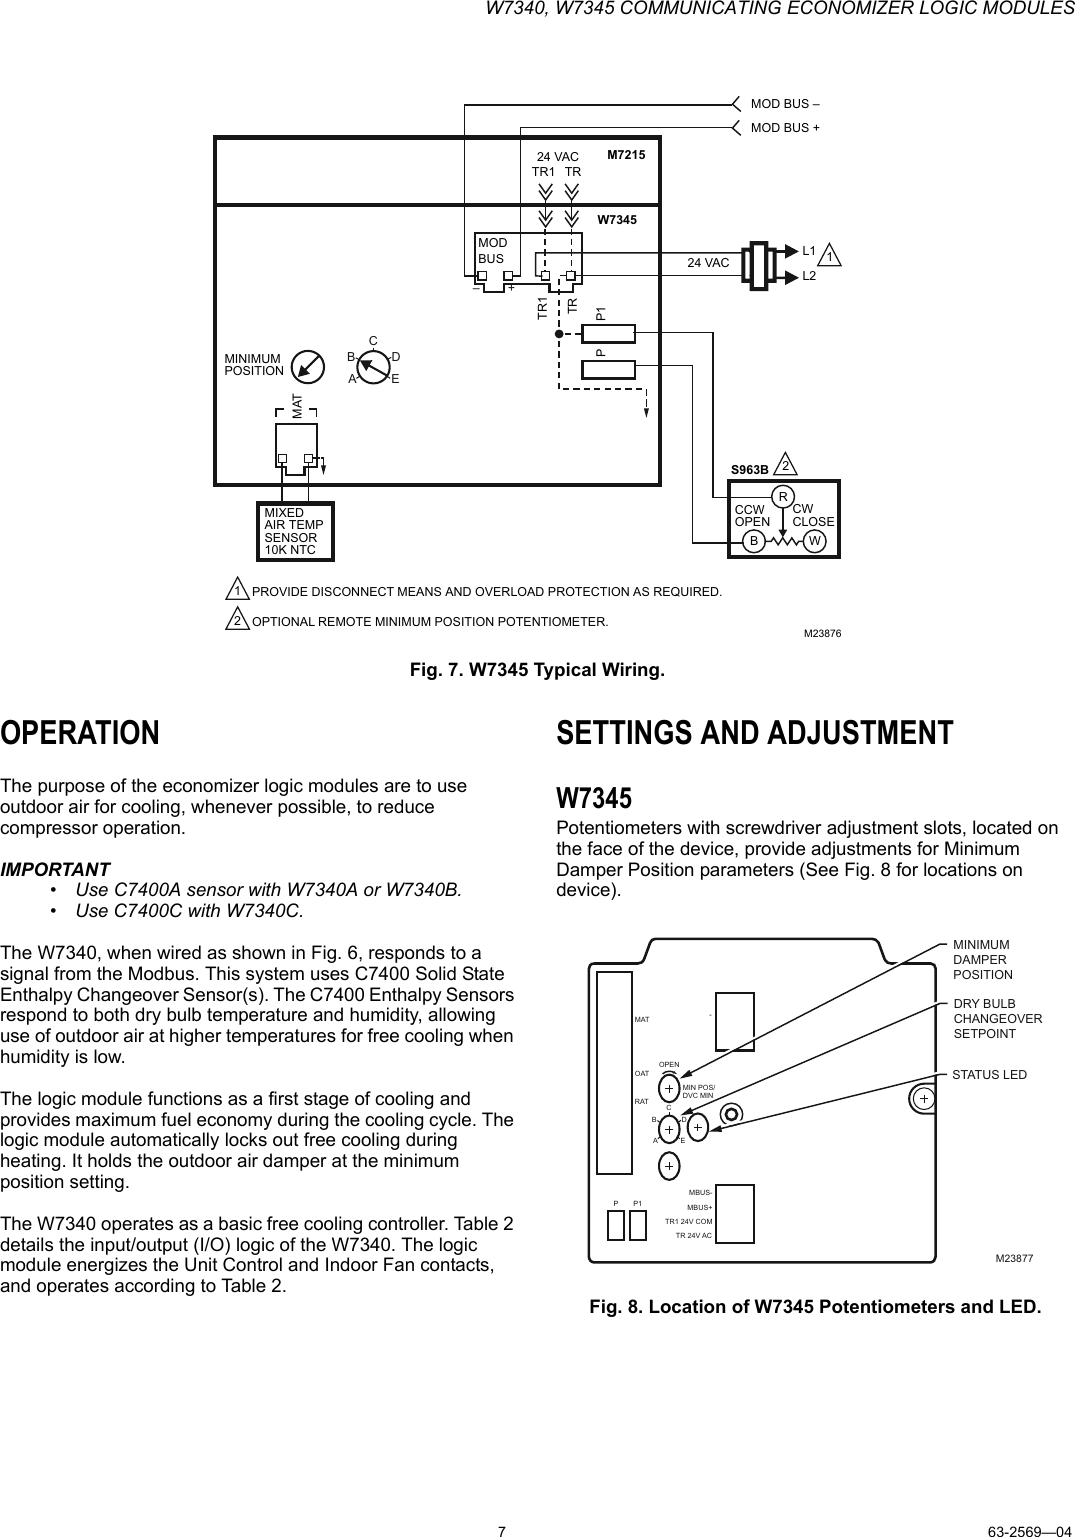 Honeywell W7340 Users Manual 63 2569 4 W7345 Communicating Wiring Potentiometer To Led Page 7 Of 12